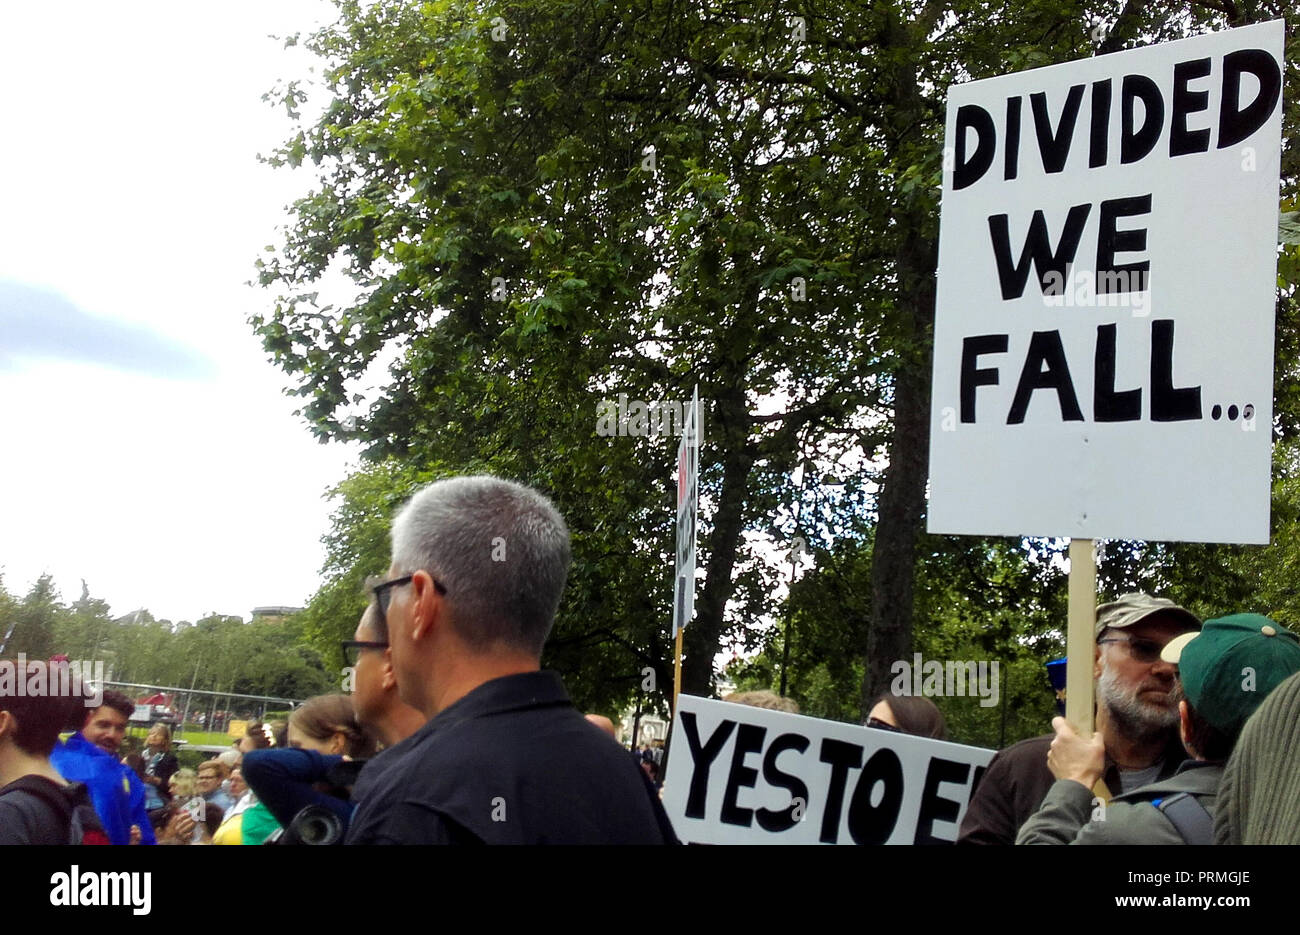 London UK, 2nd July 2016. 'March for Europe', Anti-Brexit protest. A protester holds a sign saying 'Divided we fall'. - Stock Image